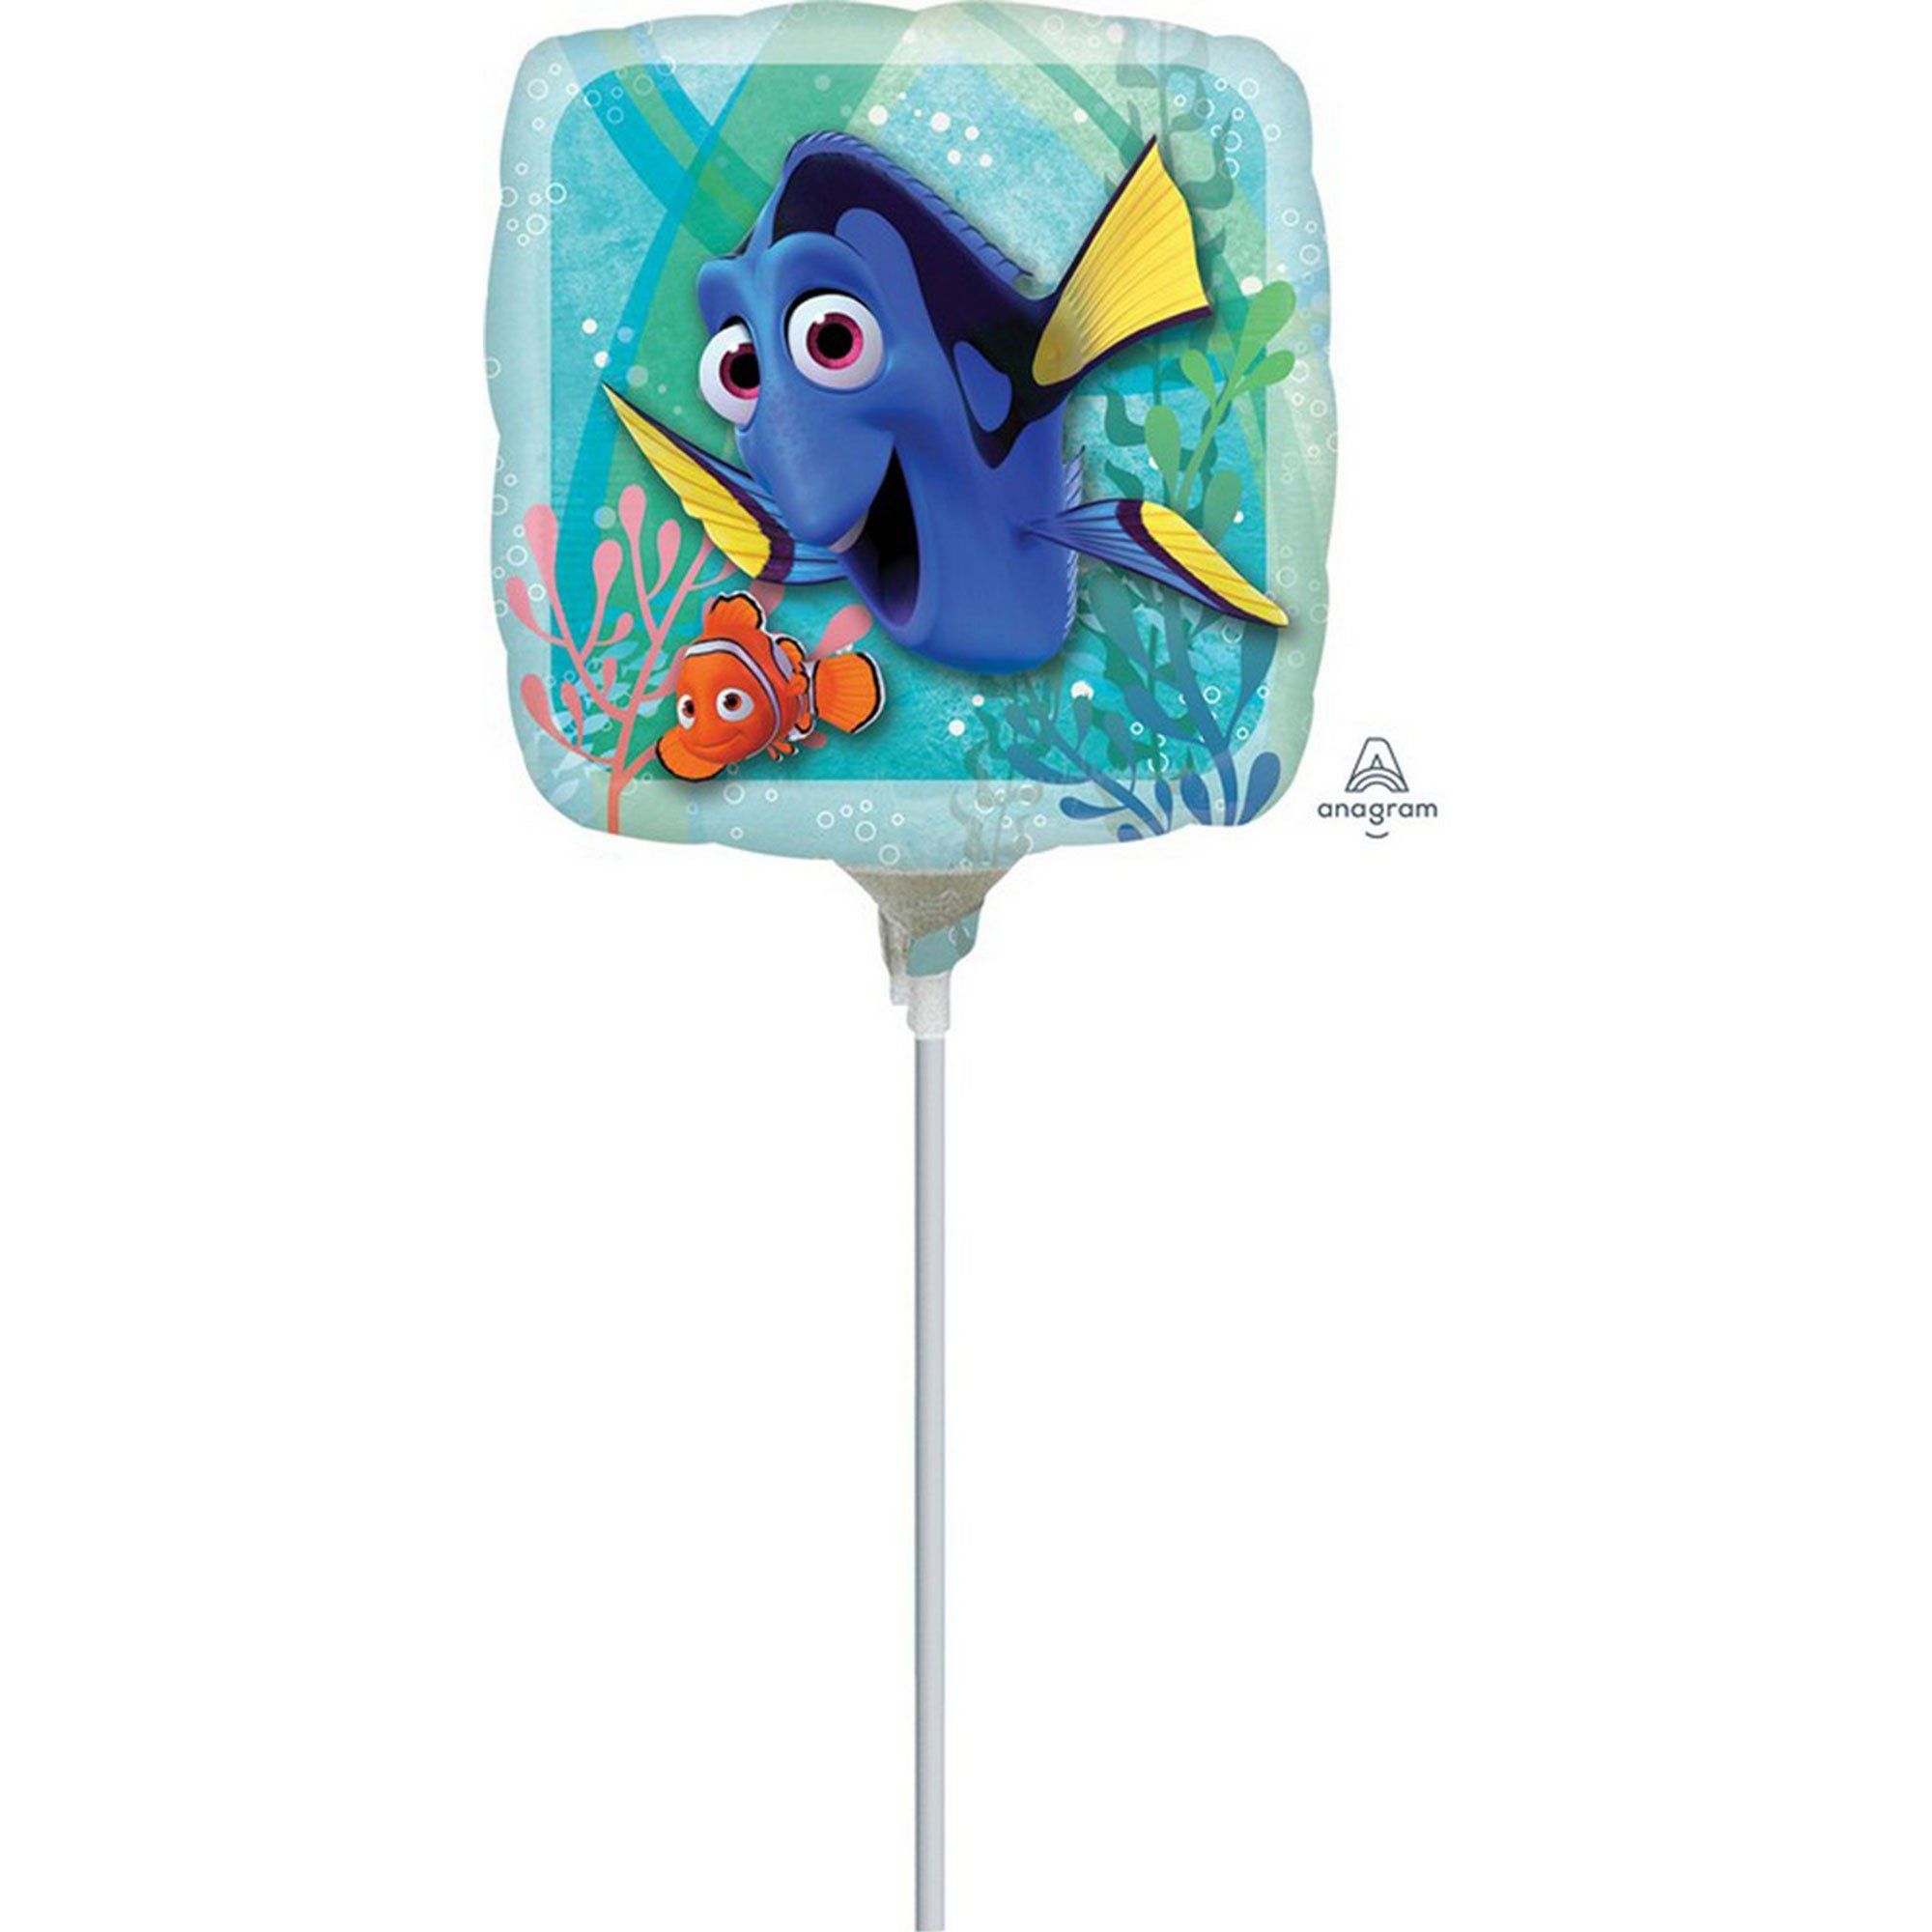 22cm Finding Dory A20